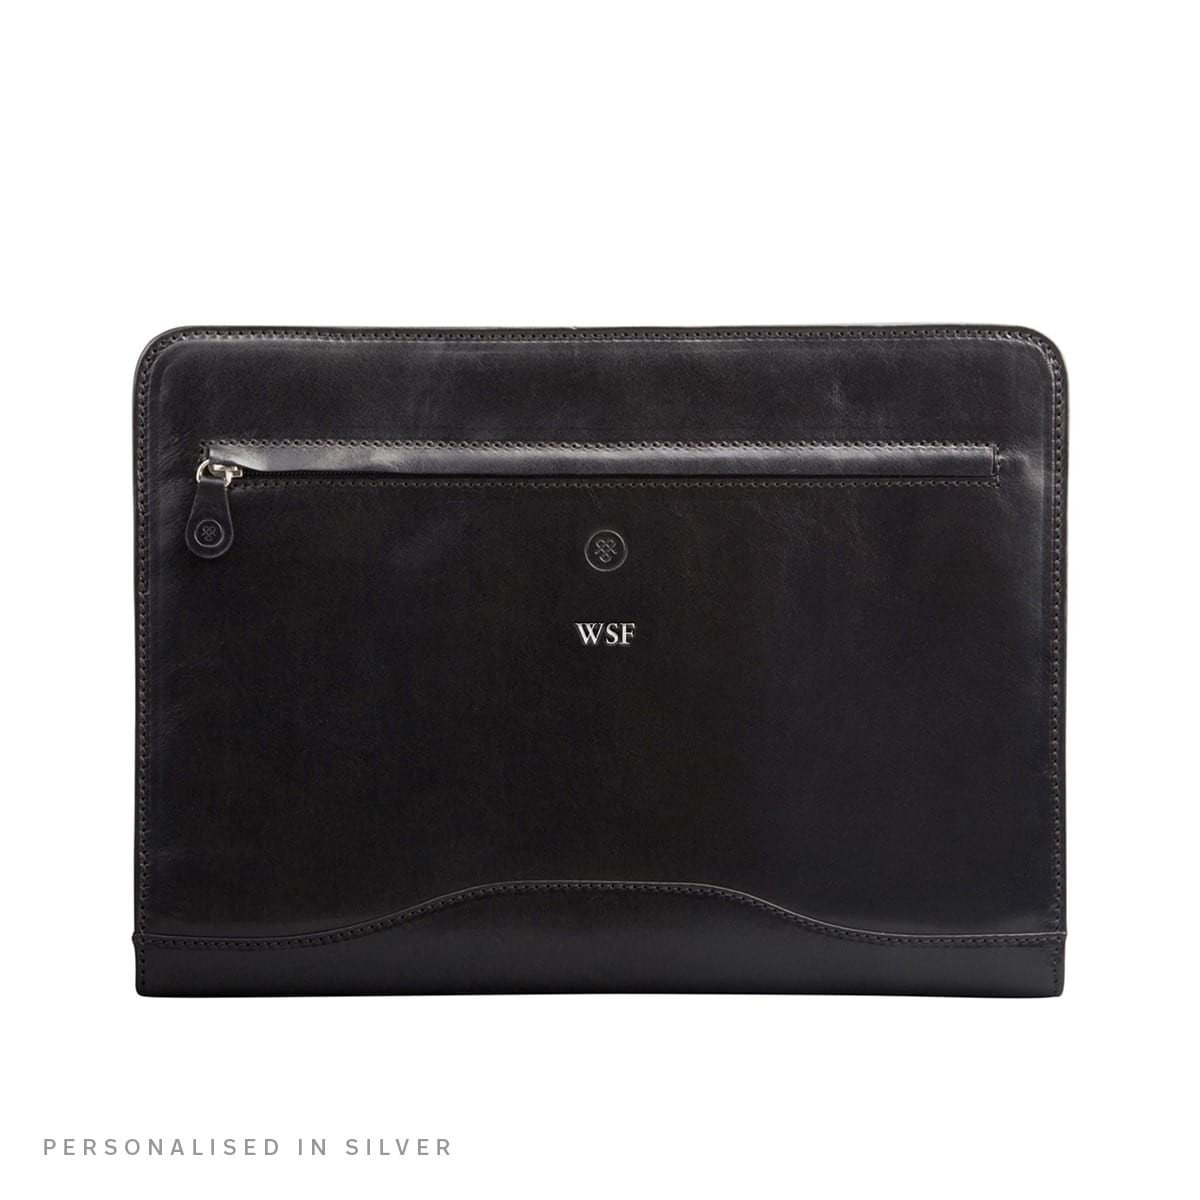 Maxwell Scott Personalized Black Leather Conference Folder with Ringbinder (The Veroli) by Maxwell Scott Bags (Image #7)